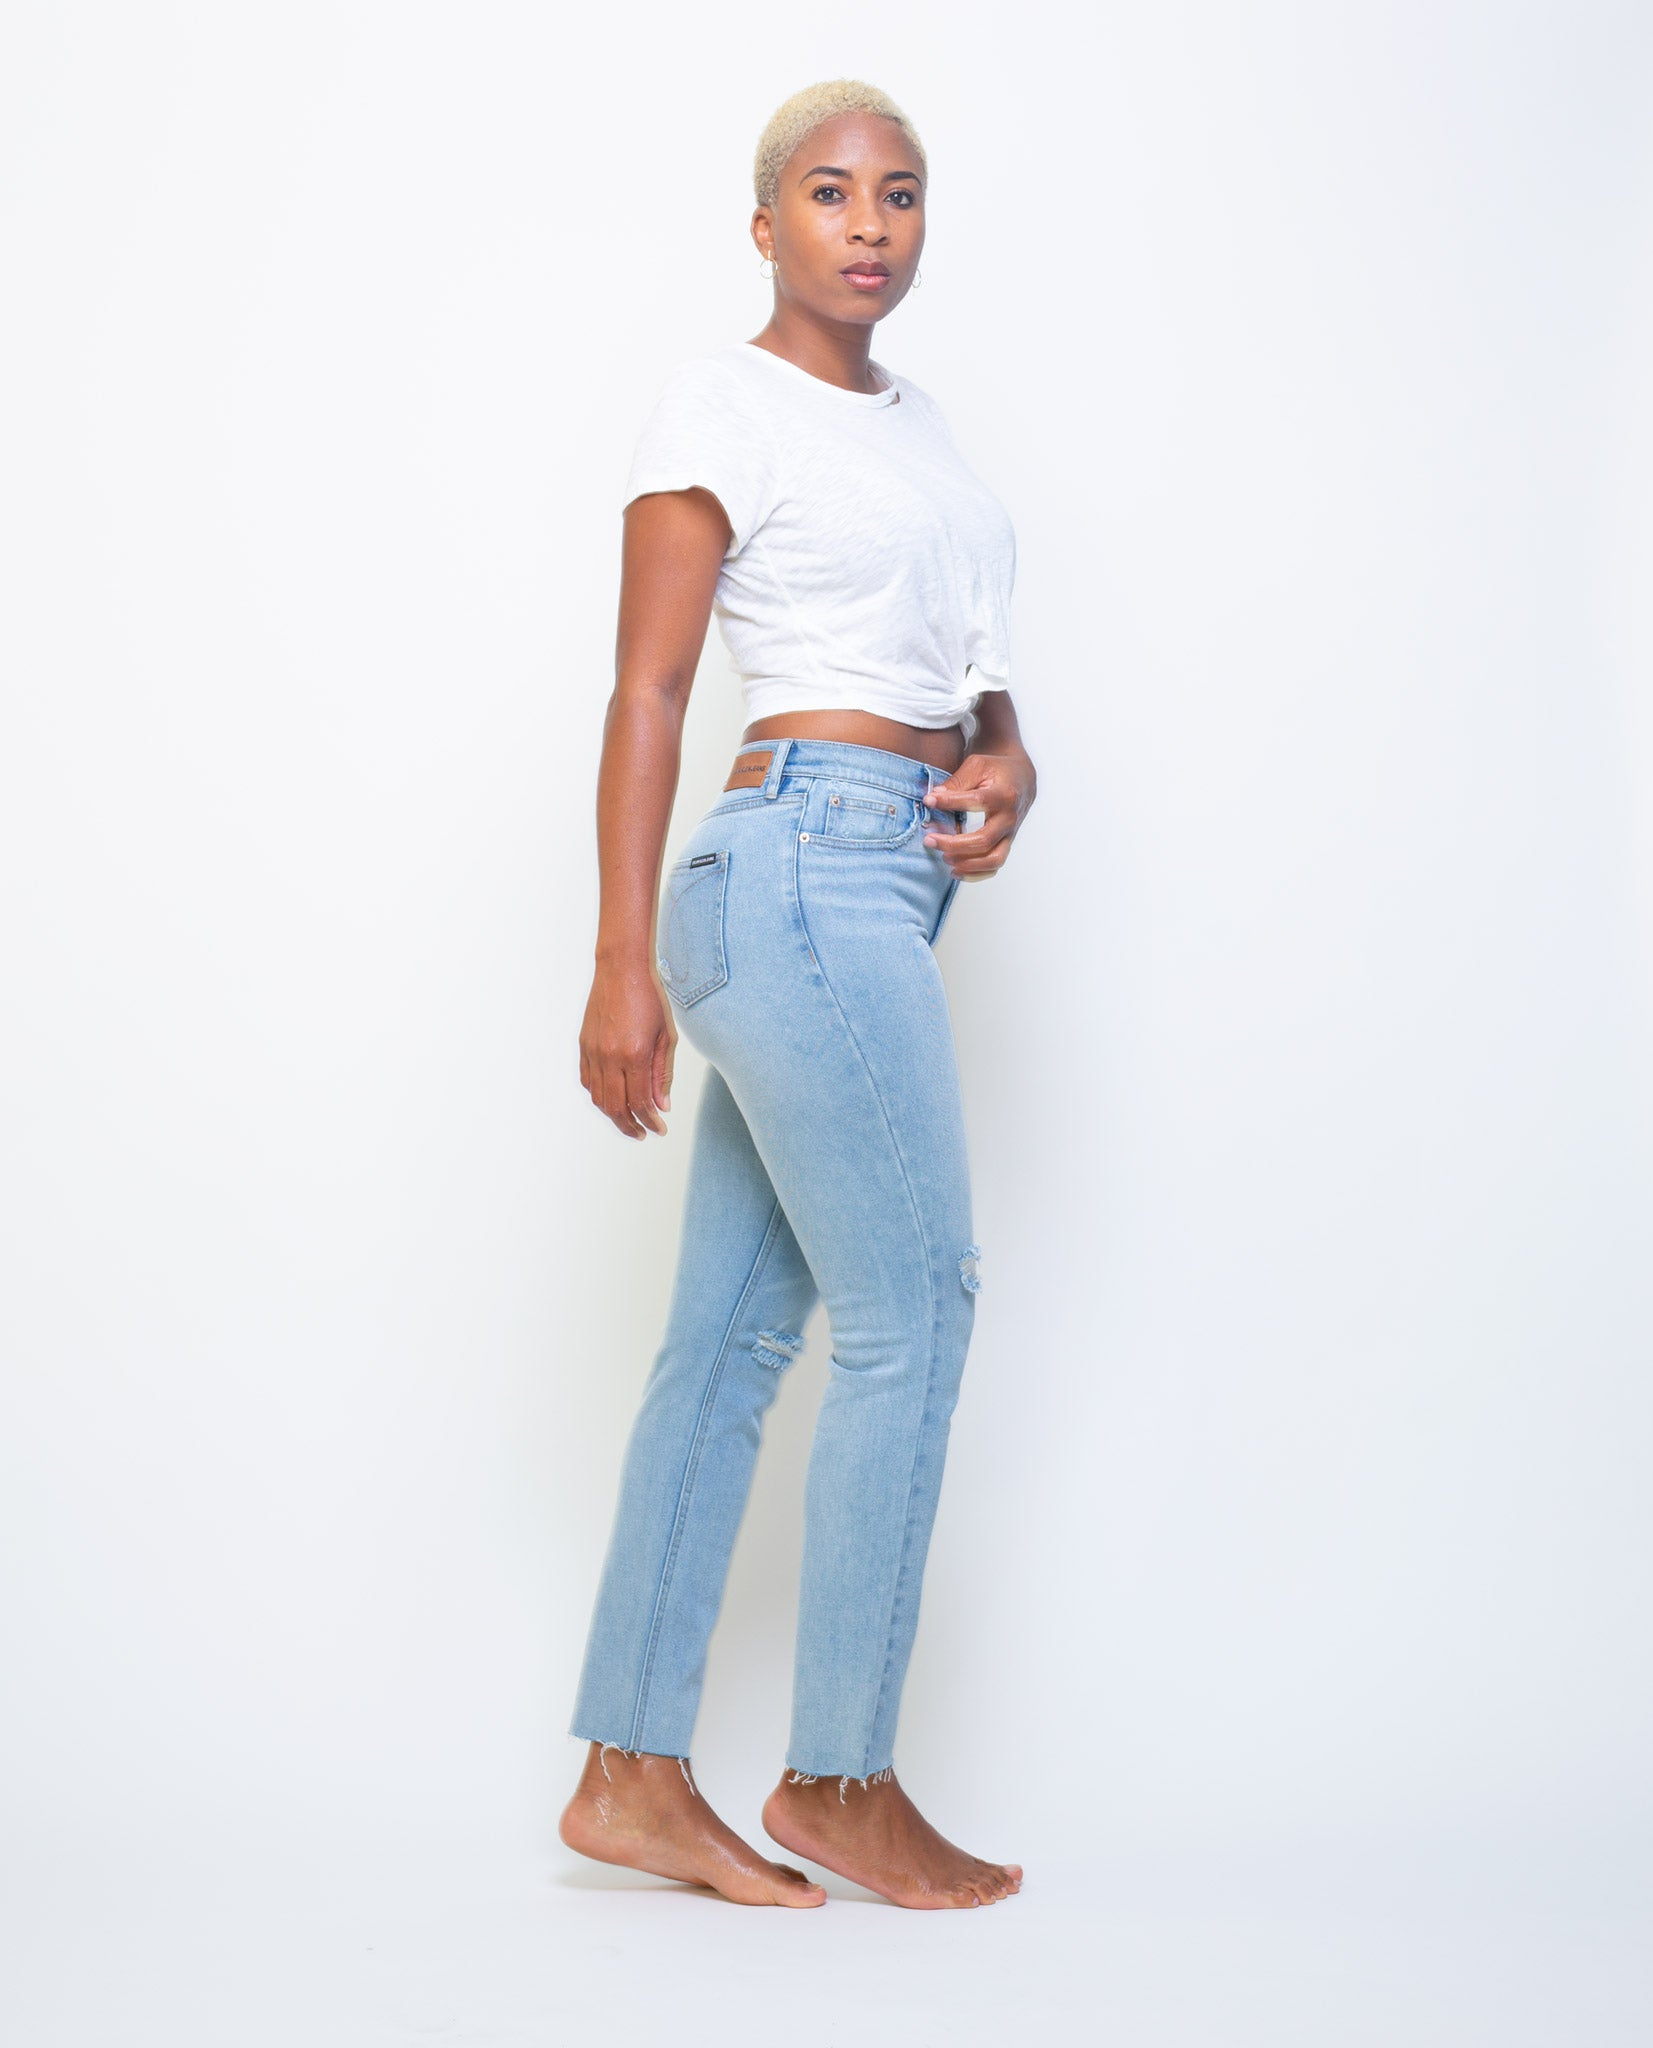 Calvin Klein High Rise Jeans - Stylish Slim Fit For Women